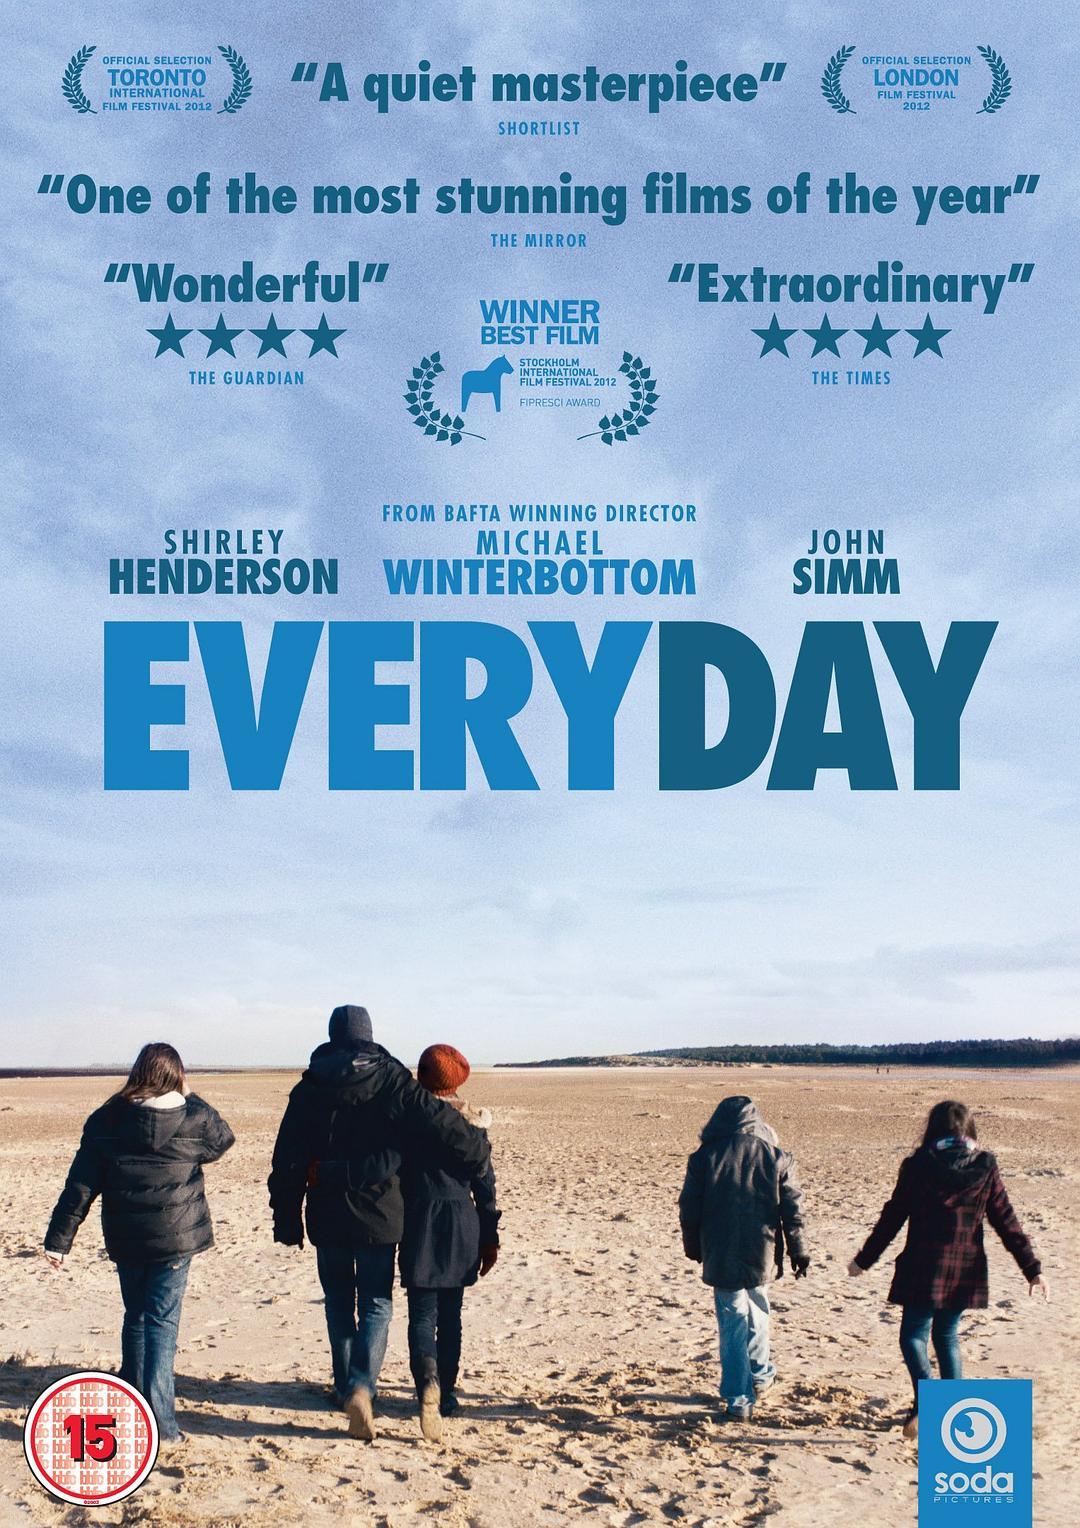 悠悠MP4_MP4电影下载_日复一日/七天 Everyday.2012.1080p.AMZN.WEBRip.DDP5.1.x264-TEPES 8.05GB